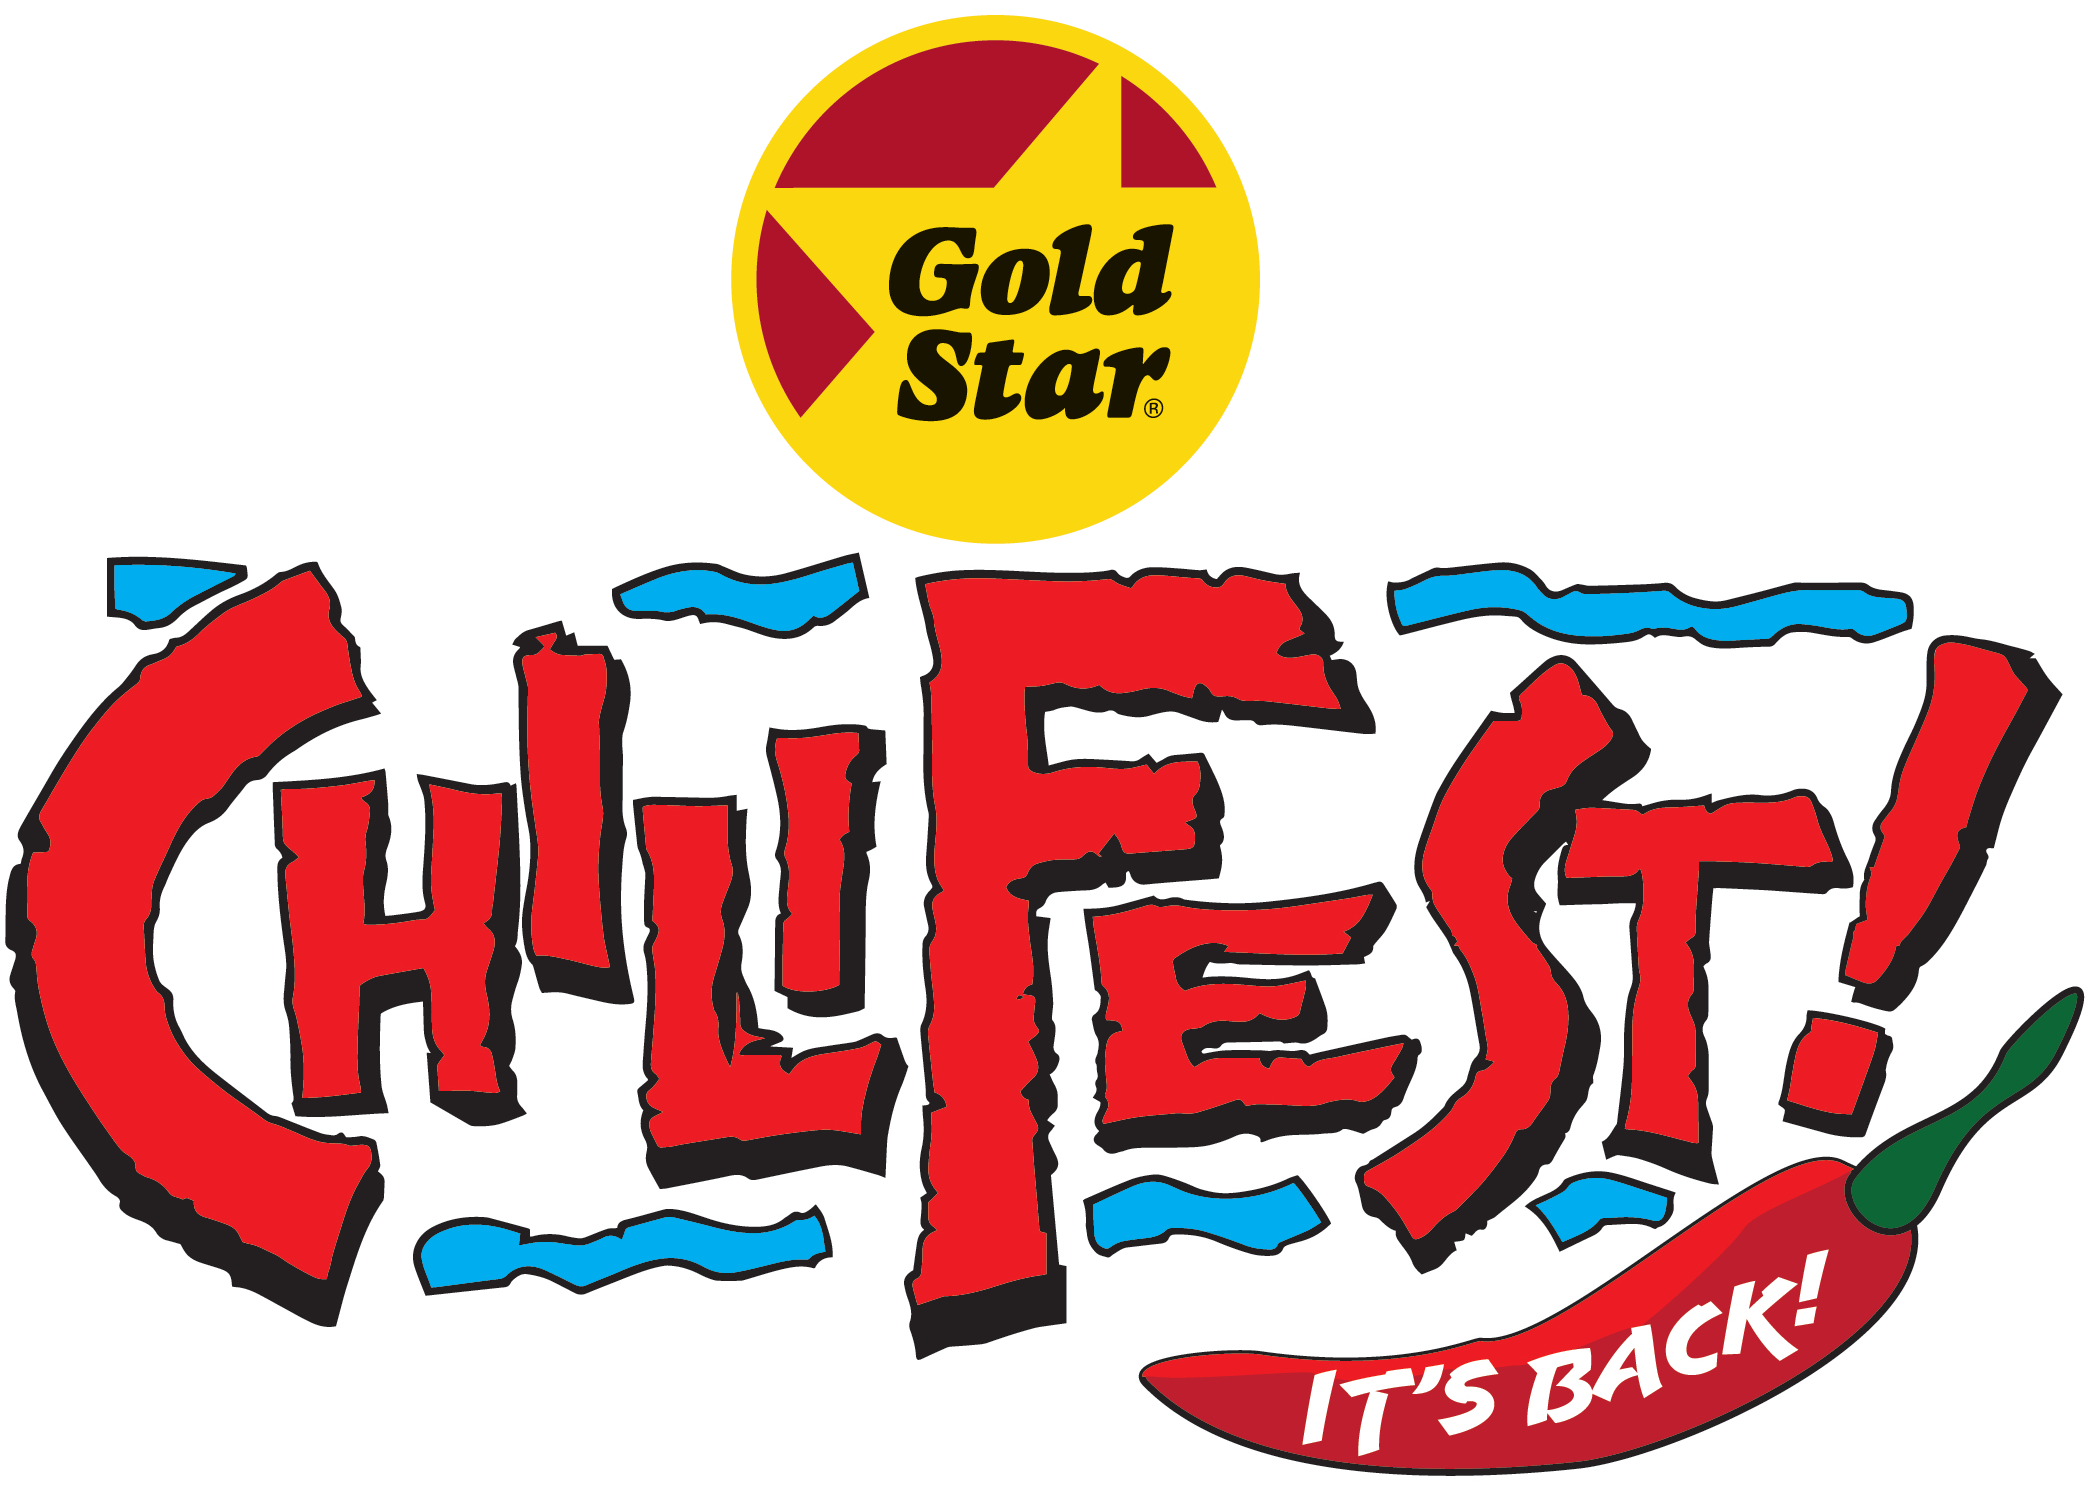 Gold Star ChiliFest